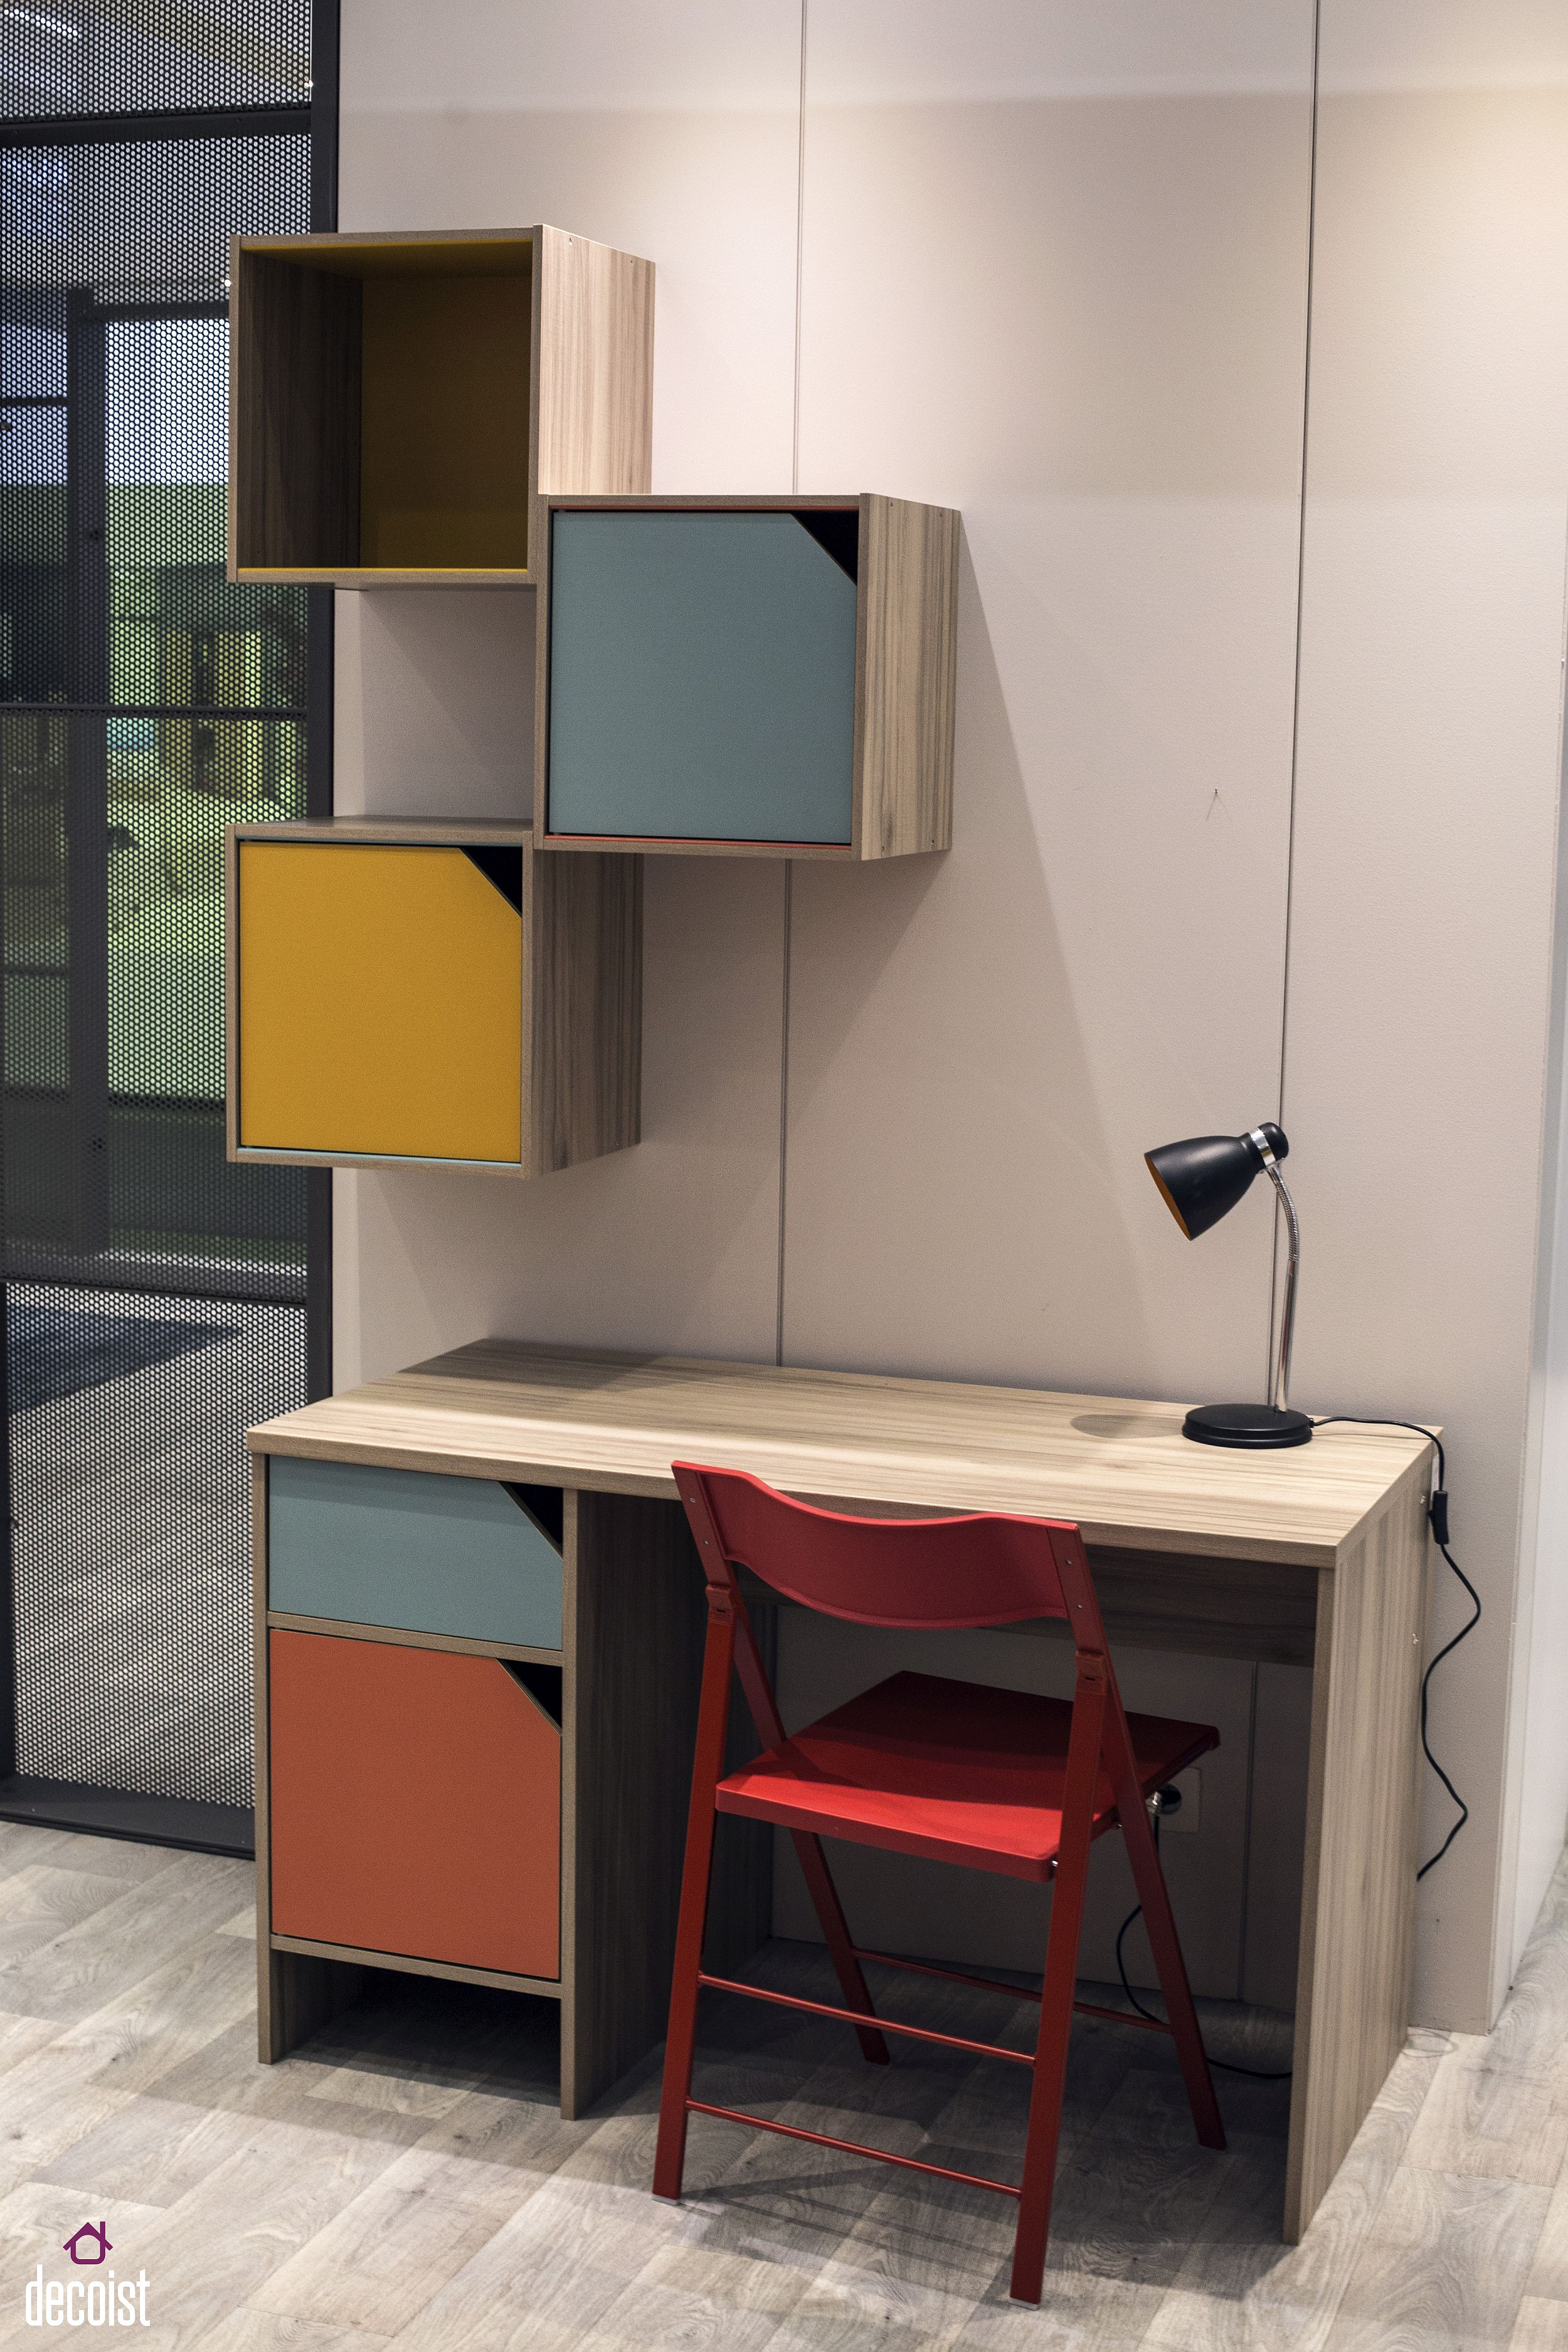 Wall-mounted modular units offer colorful storage options in the contemporary kids' room